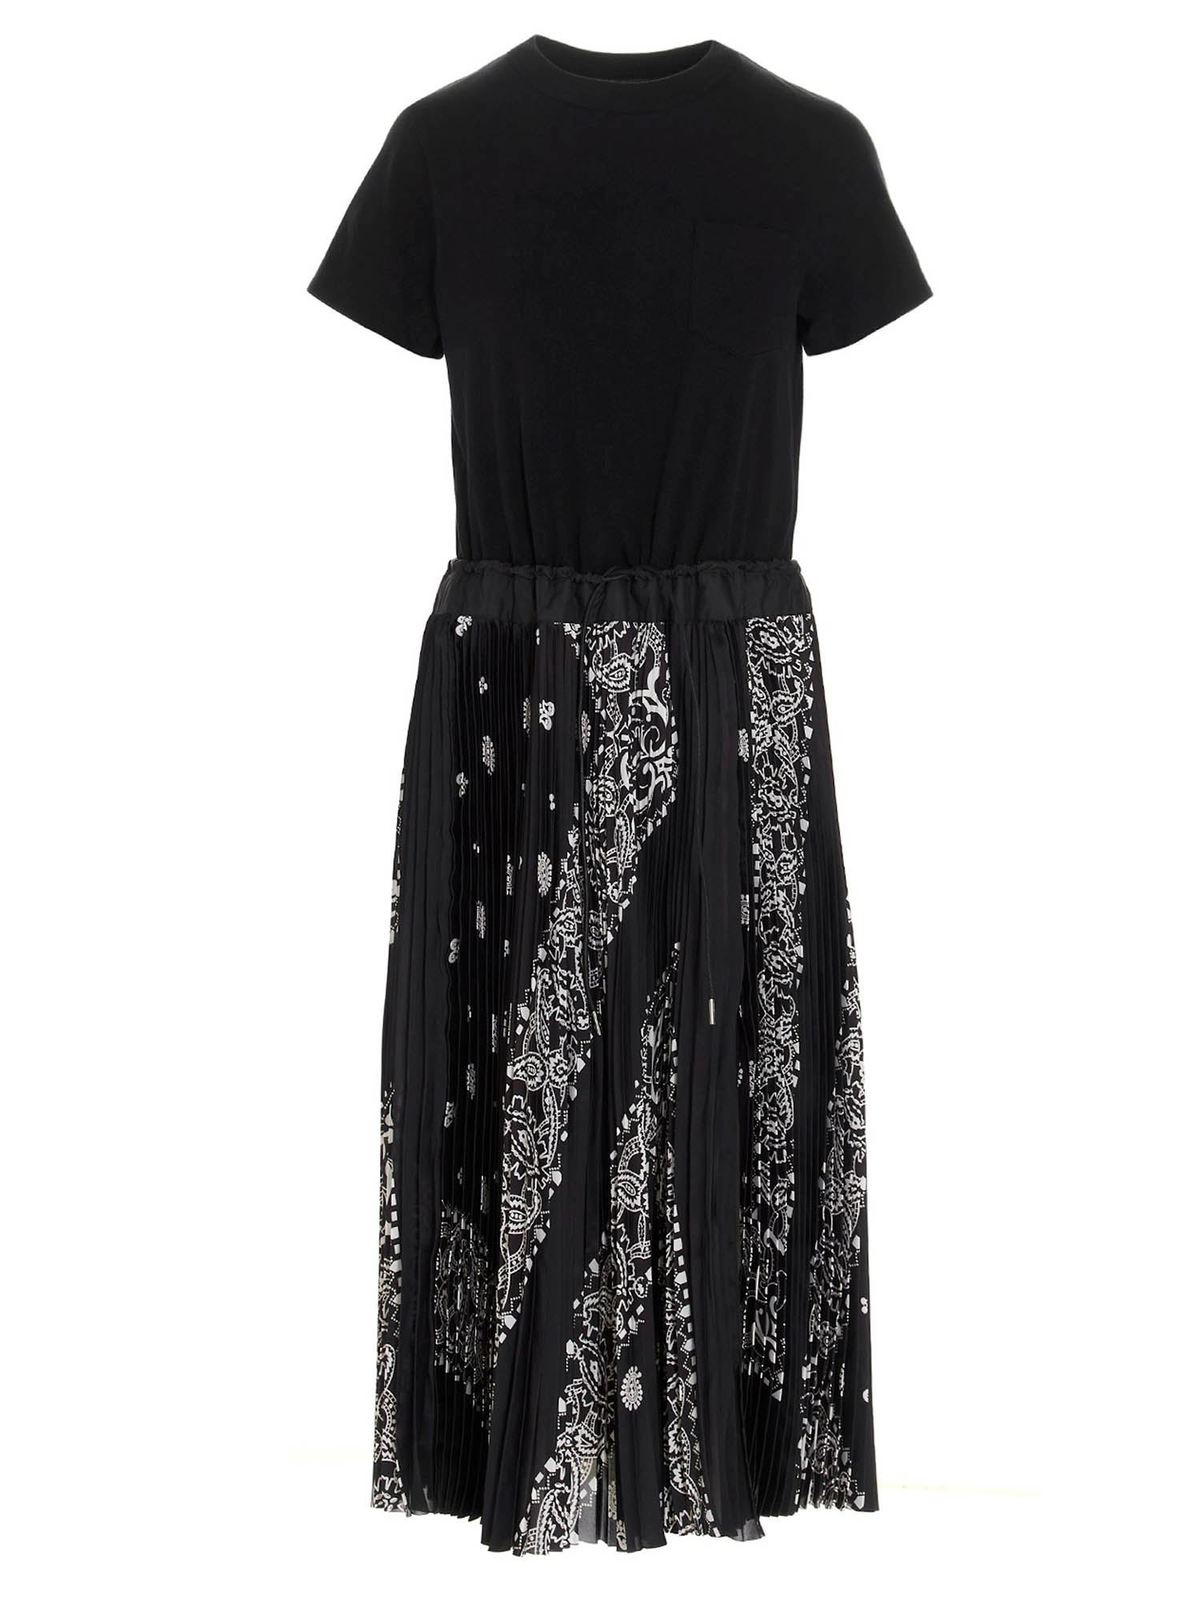 Sacai Cottons BANDANA SKIRT DRESS IN BLACK